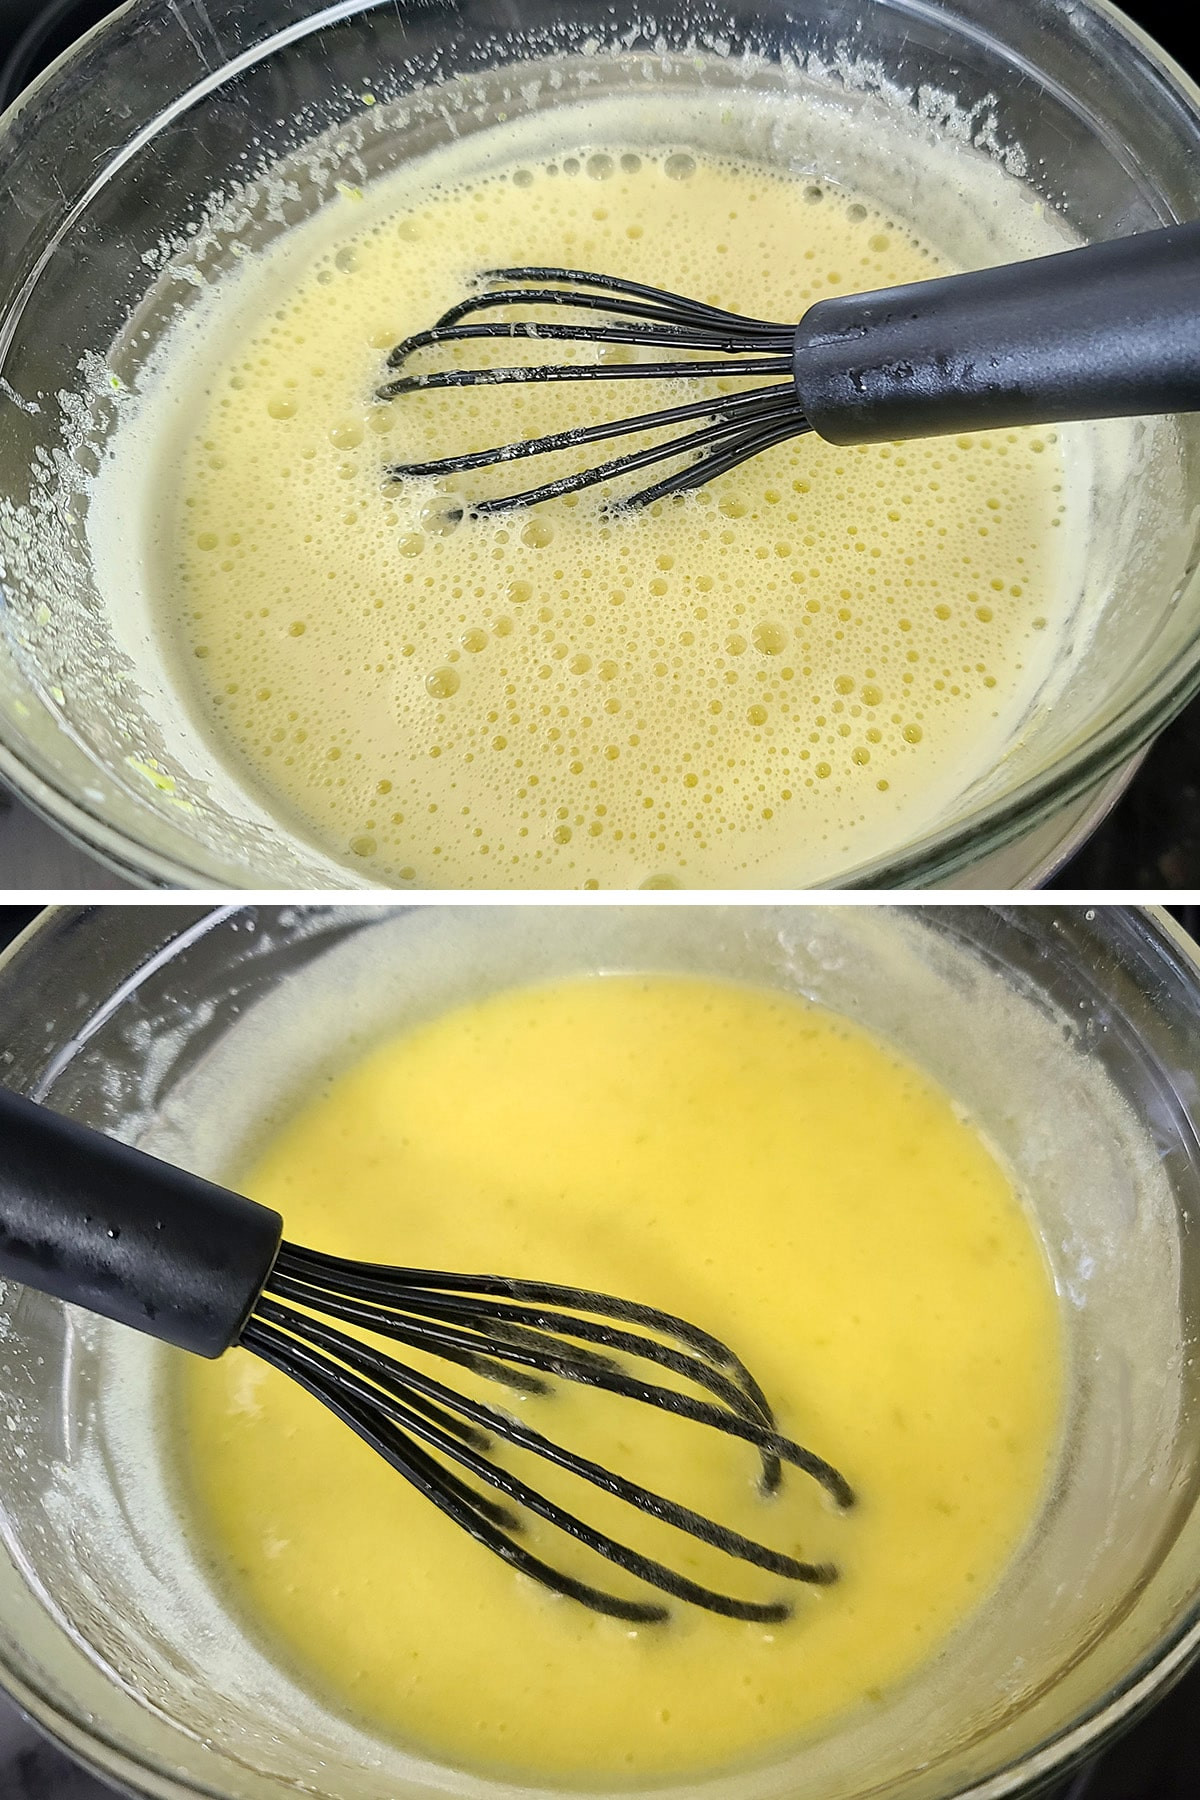 Raw lime curd being whisked together in a double boiler.